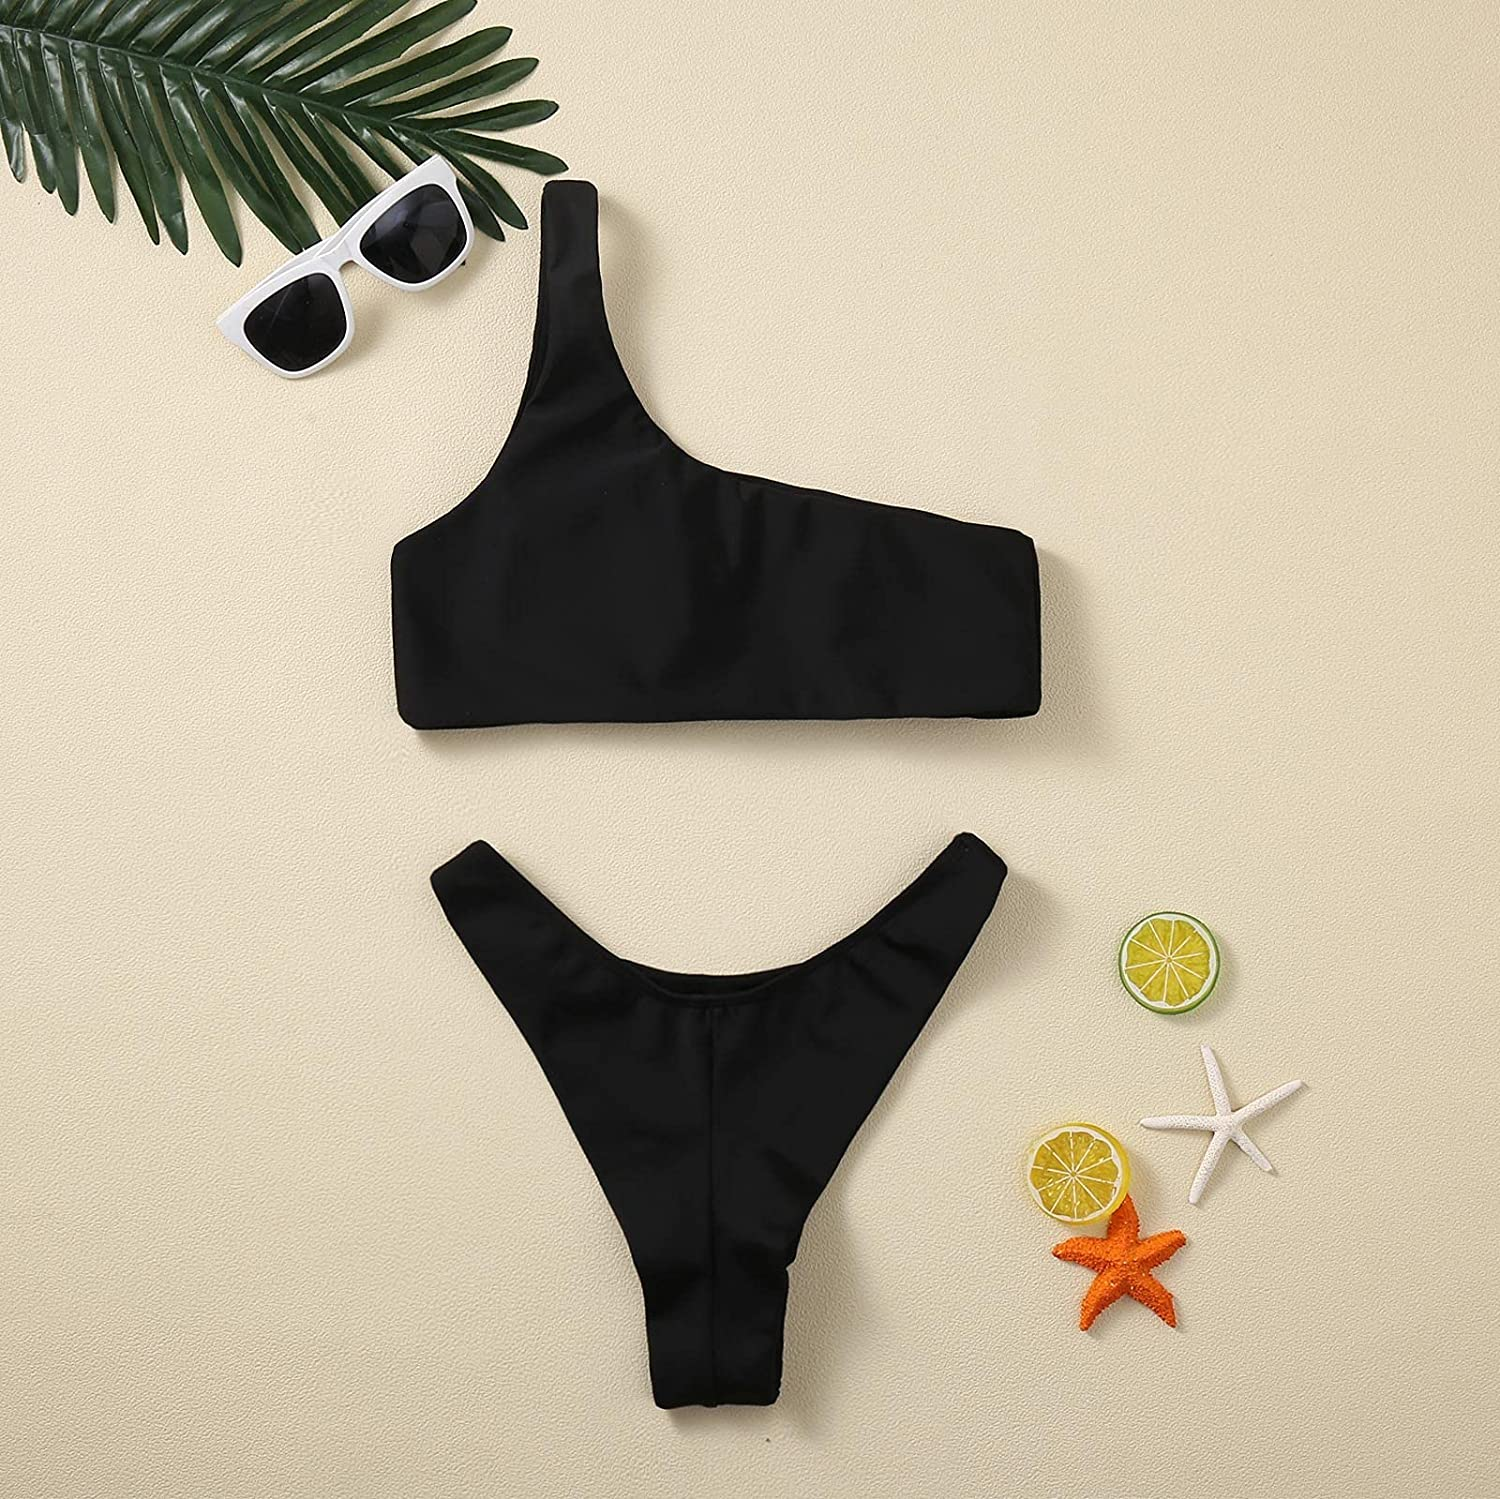 WoCoo Womens Crop Top Swimsuit High Waisted One Shoulder Sports Bikini Two Piece Push Up Bathing Suit with Thong